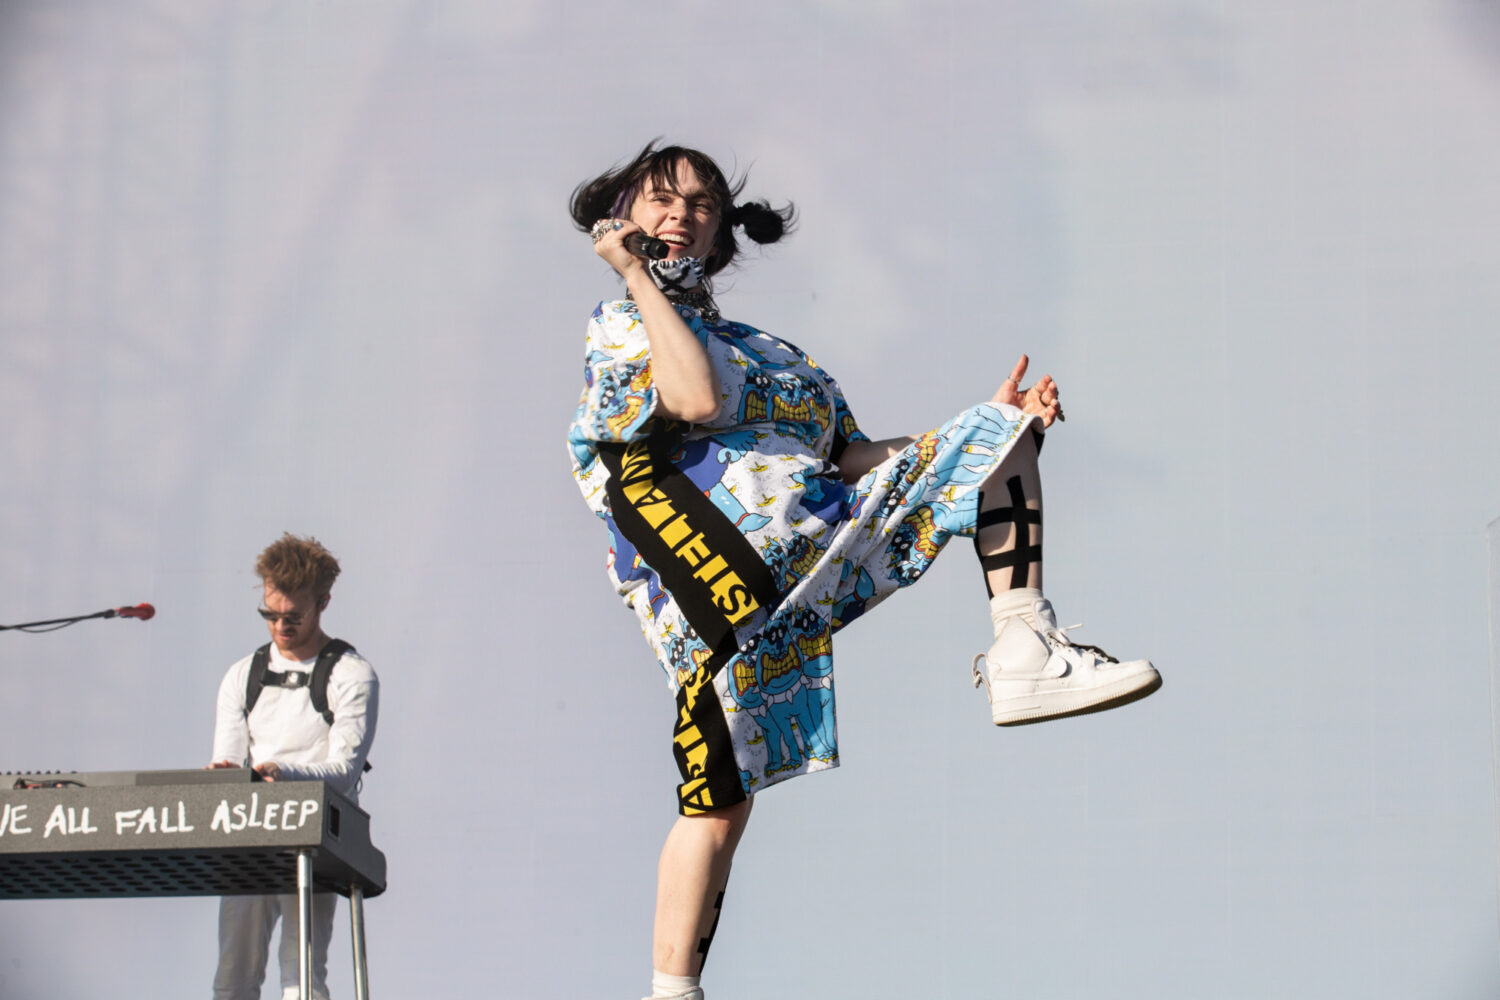 Billie Eilish's Glastonbury 2019 set is the forming of a future headliner